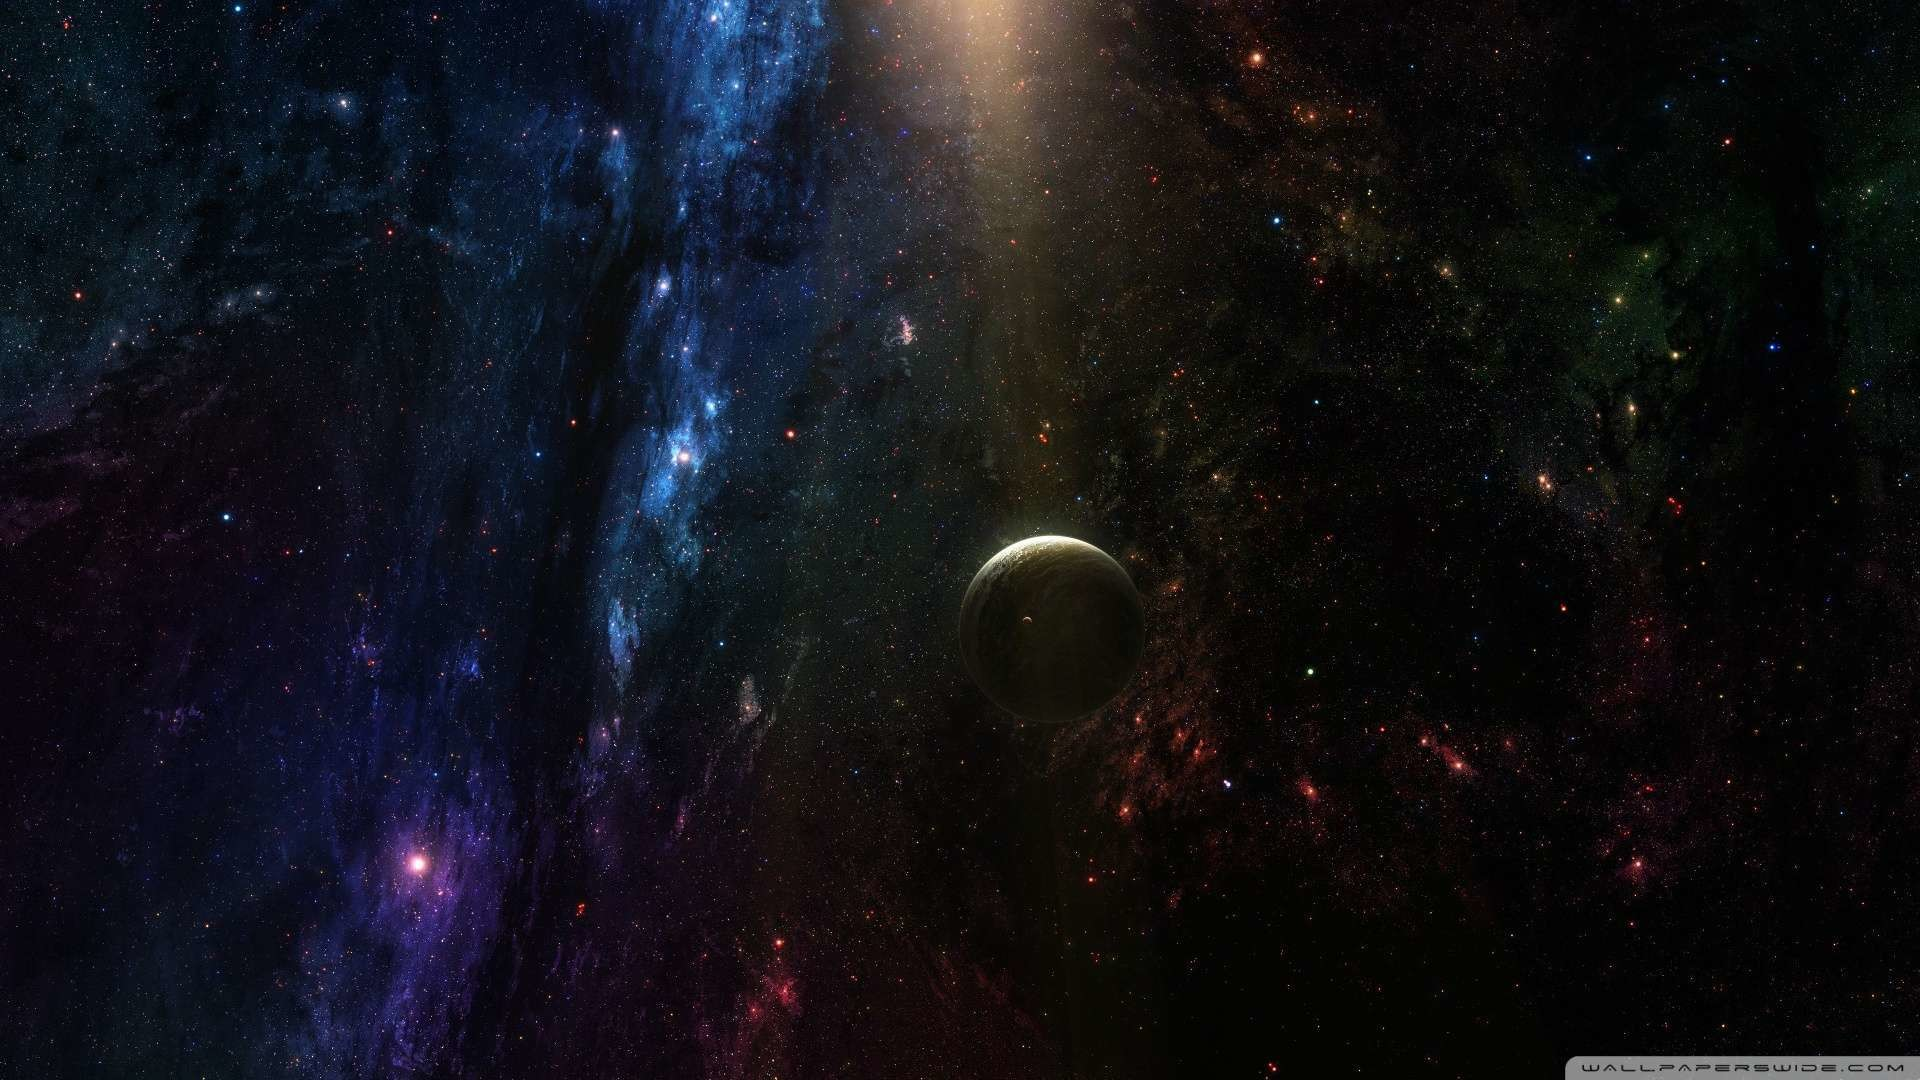 Wallpaper: Planet In Deep Space Wallpaper 1080p HD. Upload at February .